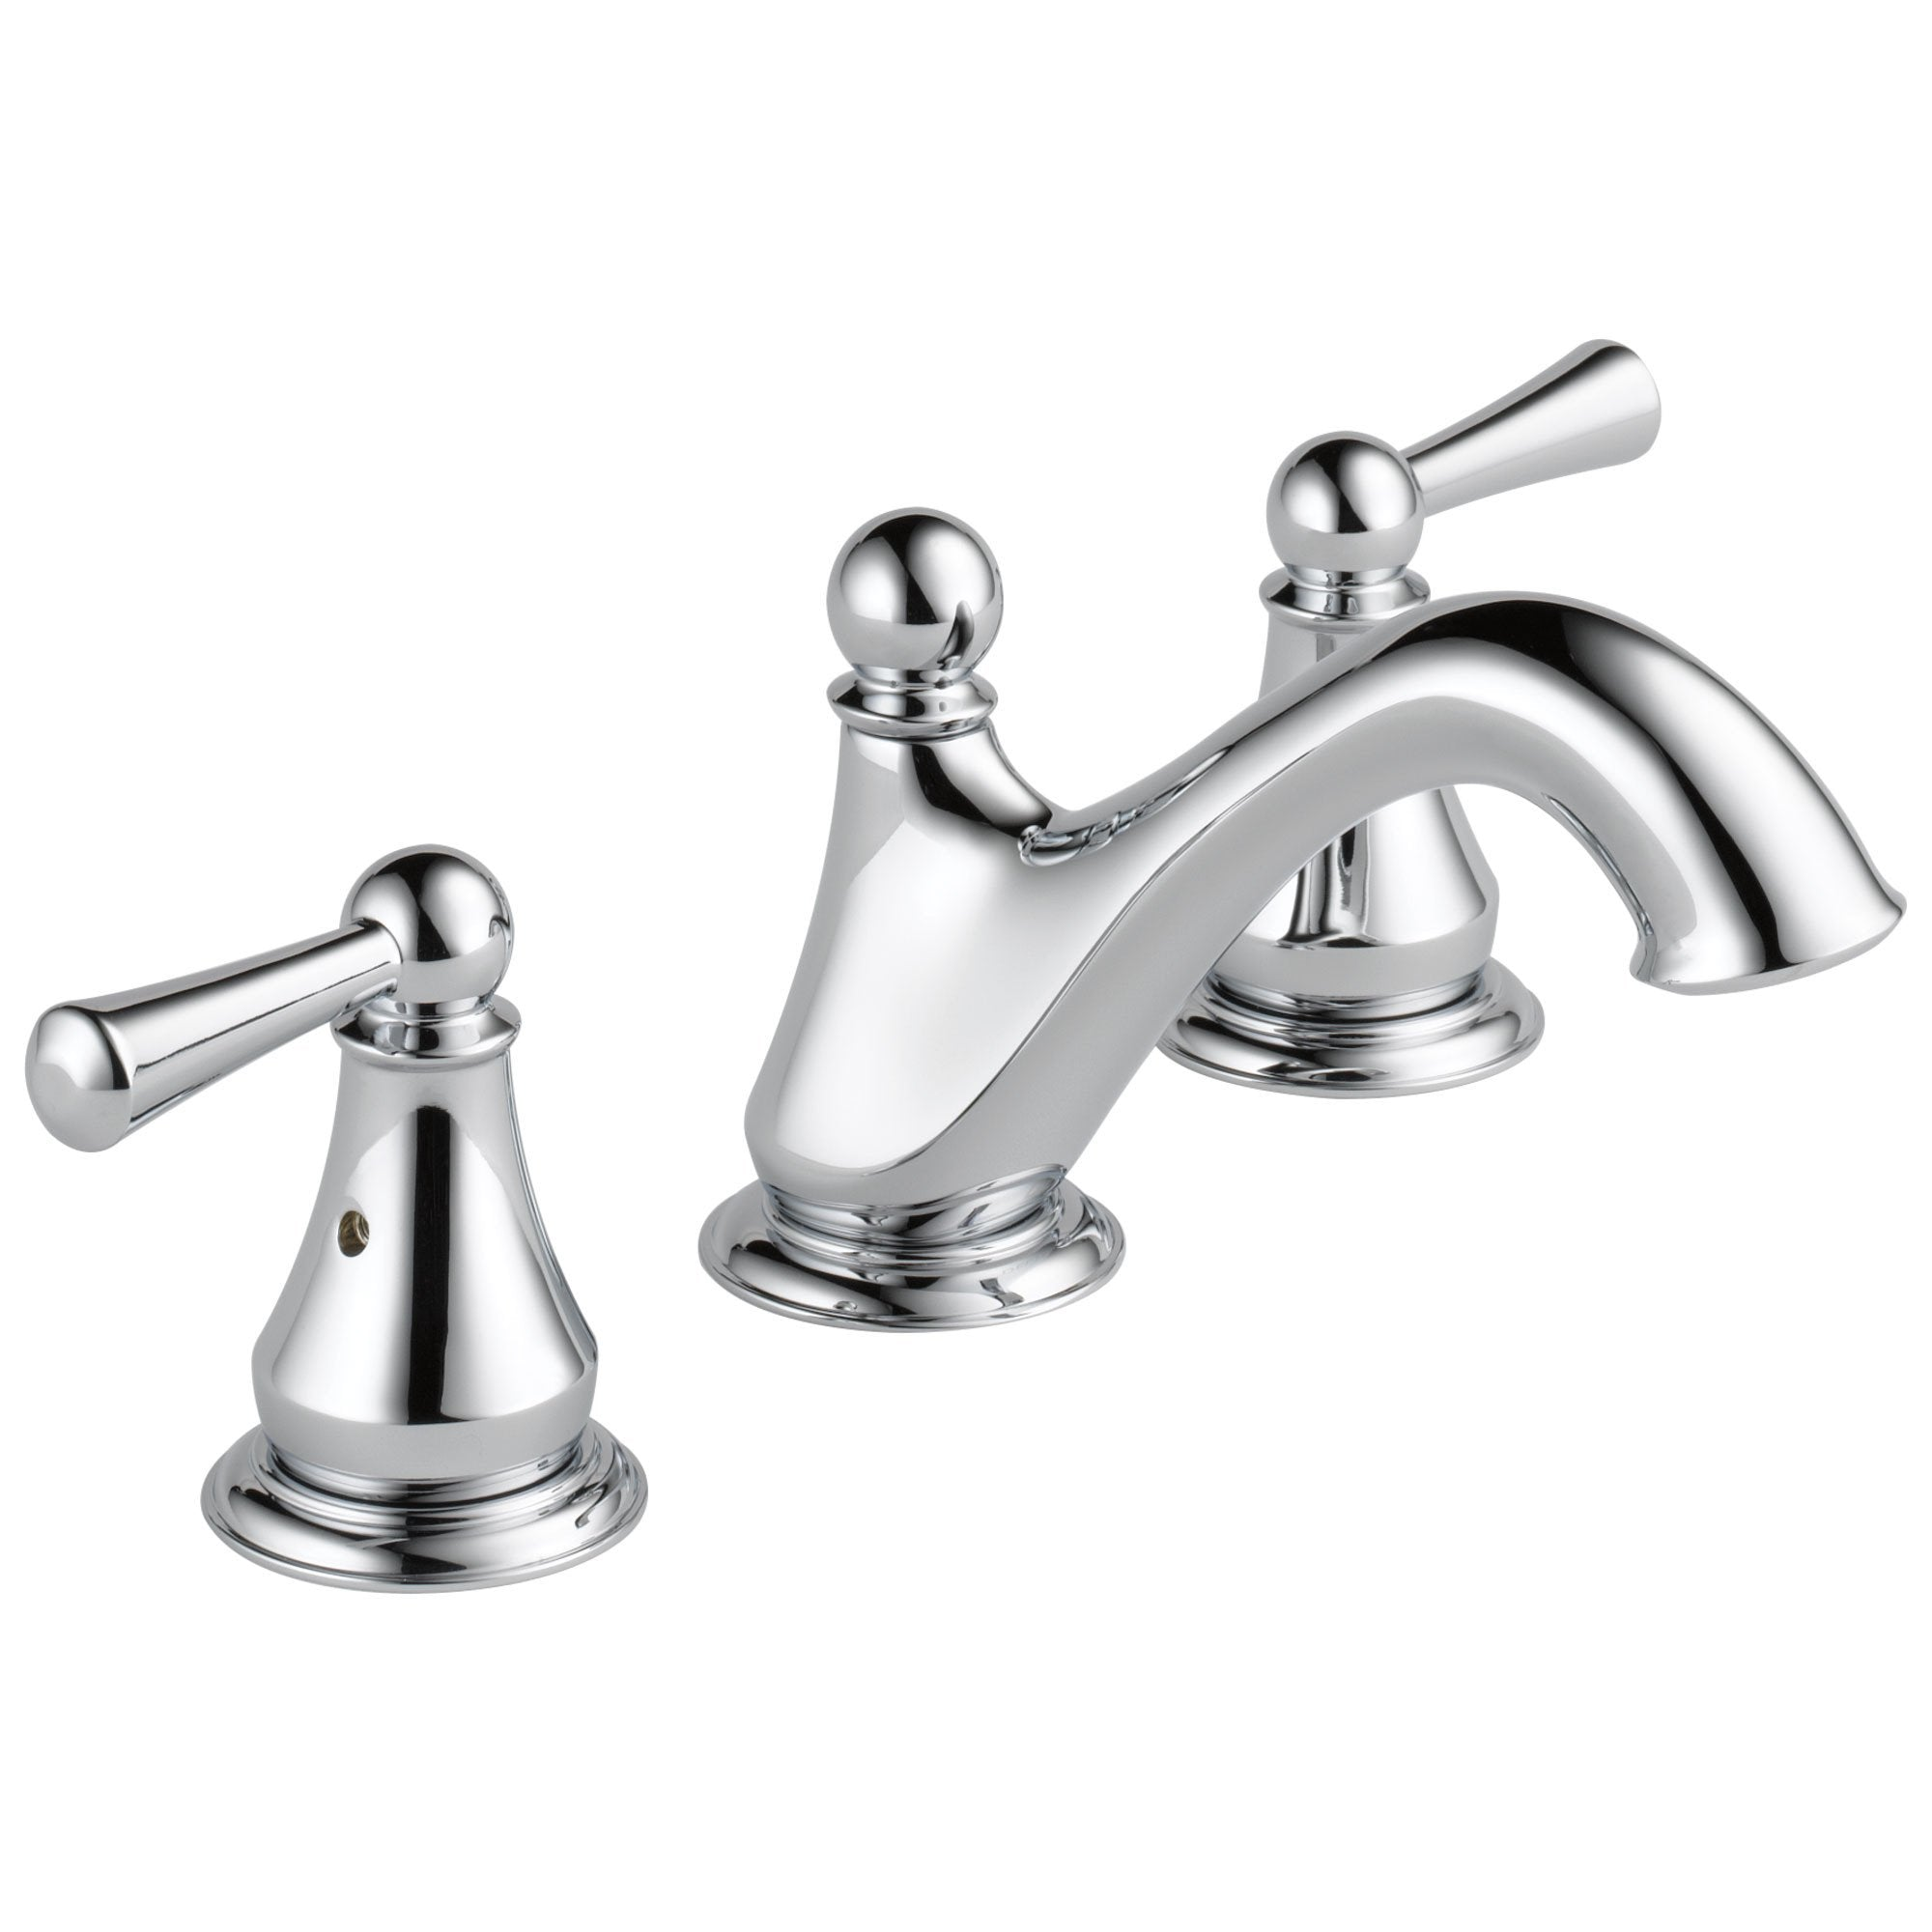 Delta Haywood Collection Chrome Finish Two Lever Handle Widespread Lavatory Bathroom Sink Faucet 722479